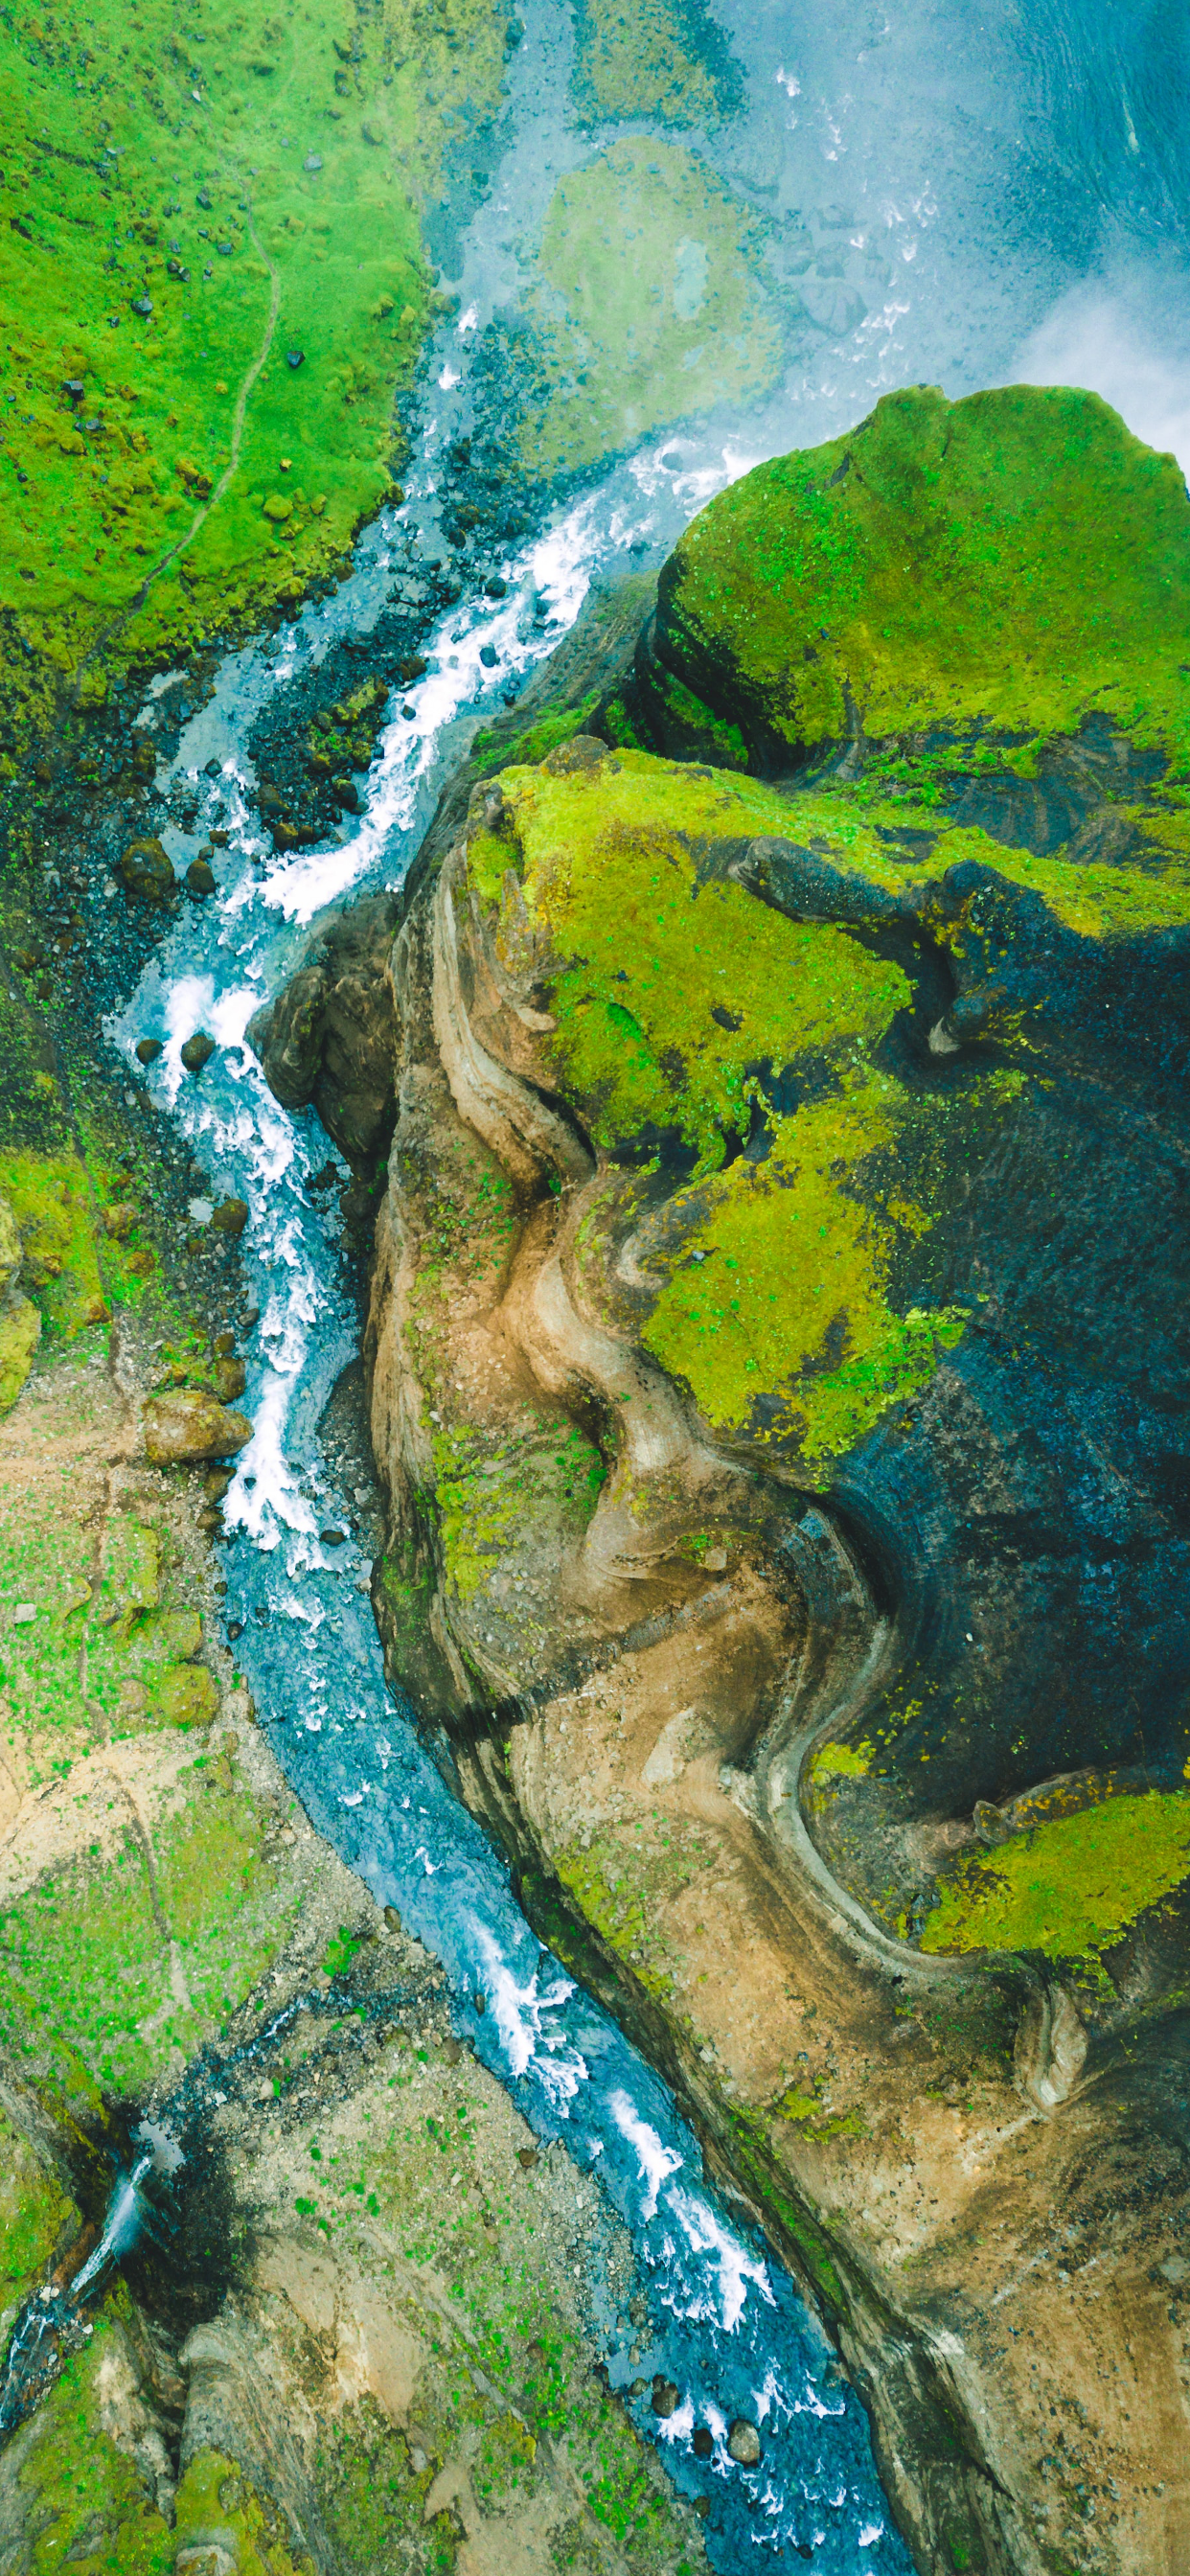 iPhone wallpapers aerial images iceland Fonds d'écran iPhone du 01/10/2019